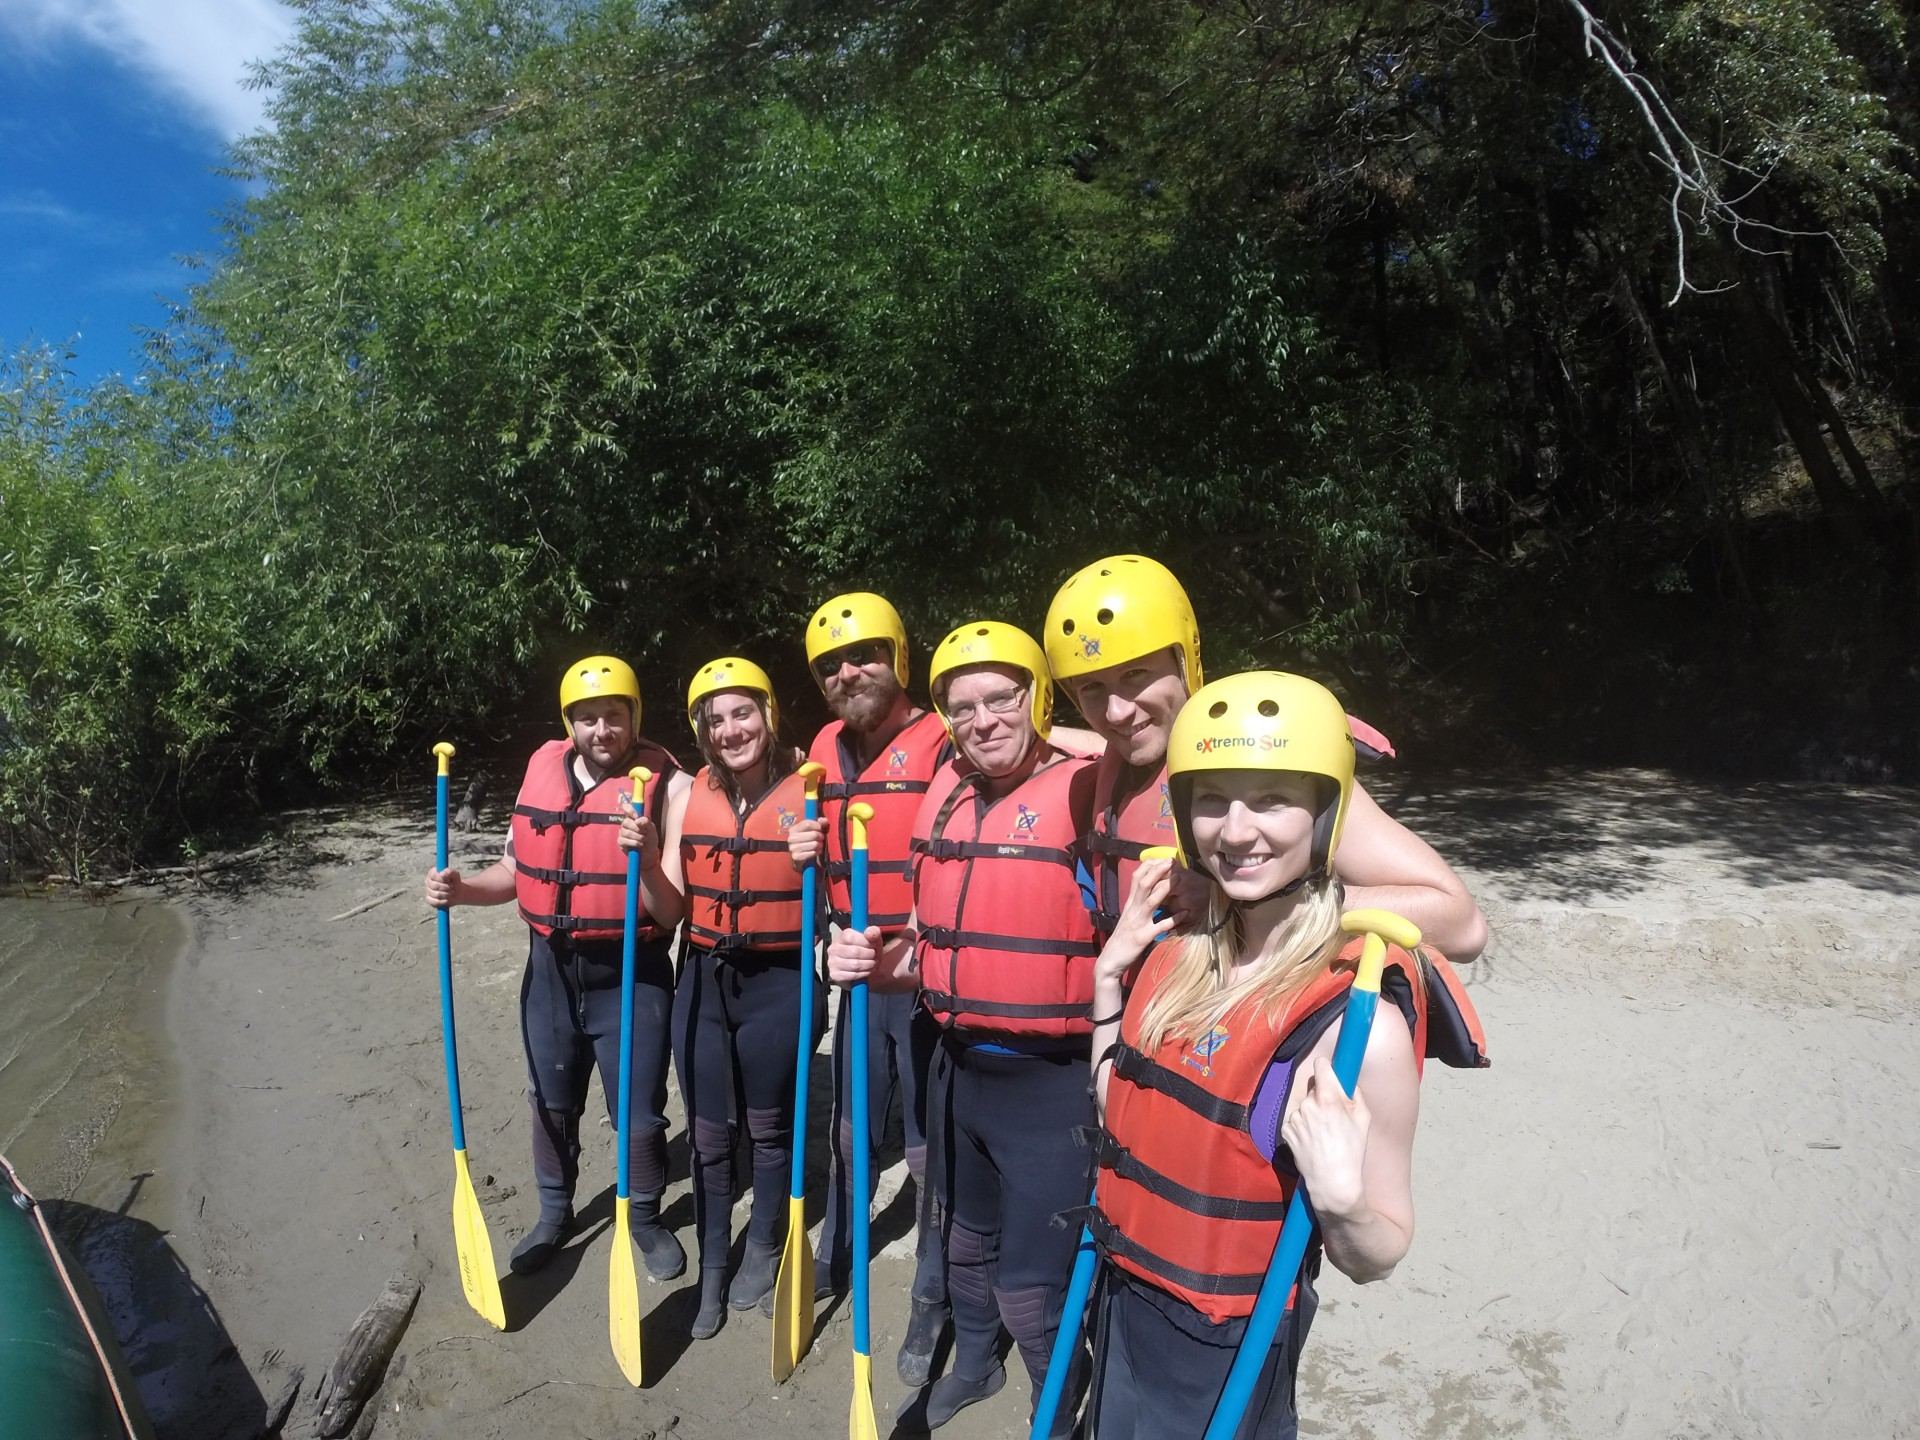 All ready for rafting.